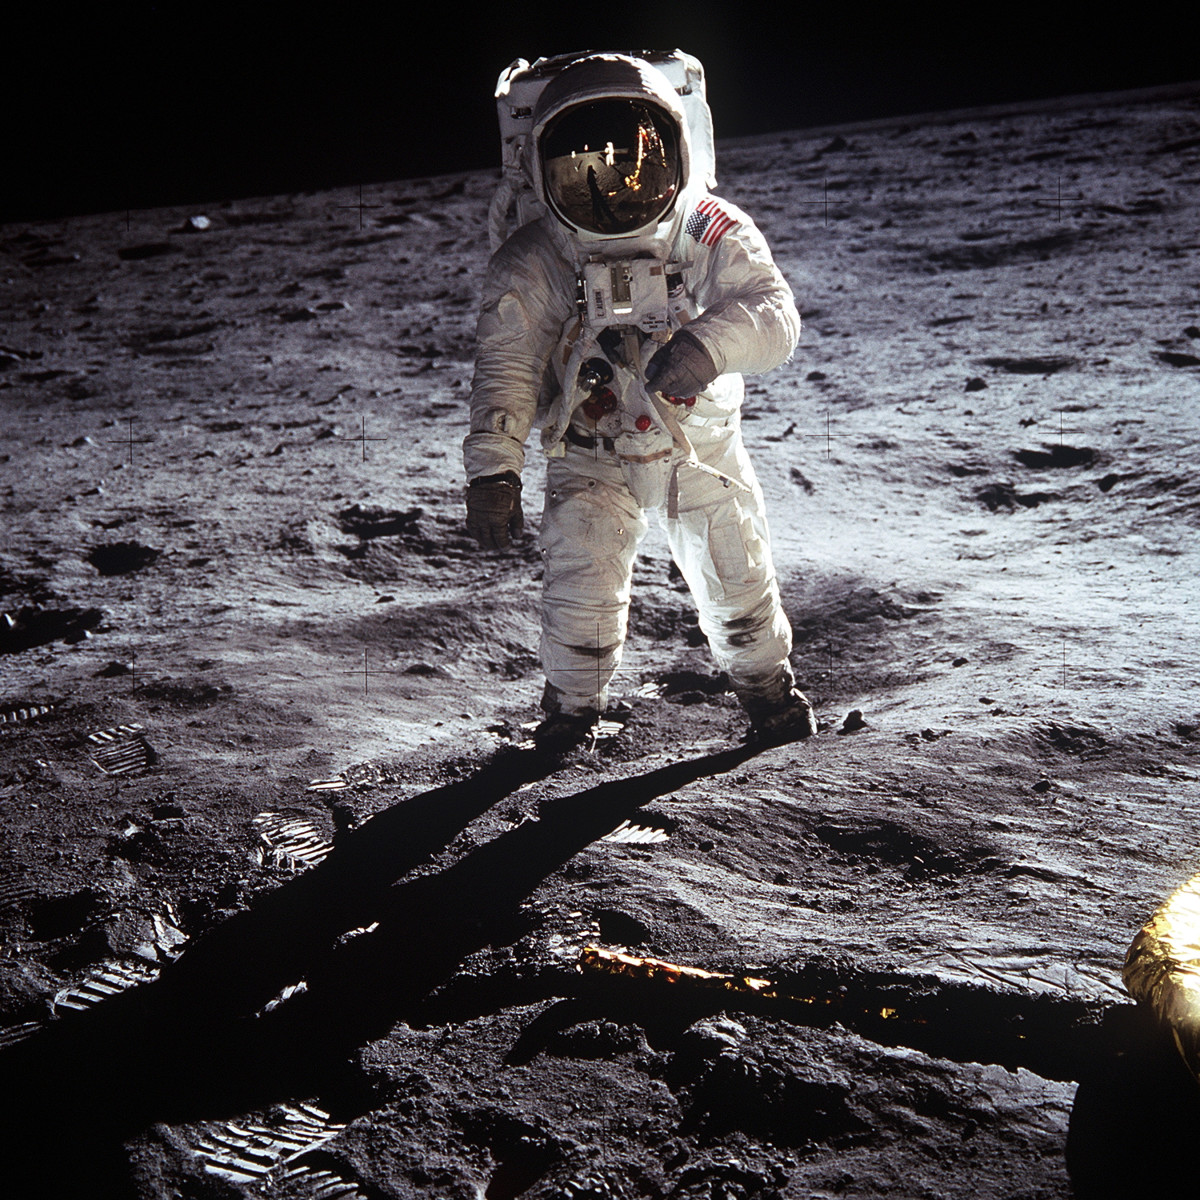 Considered one of the finest photos taken during the Apollo 11 mission.  This photo of Buss Aldrin was captured by Neil Armstrong.  You can make out his reflection in the helmet of Aldrin.